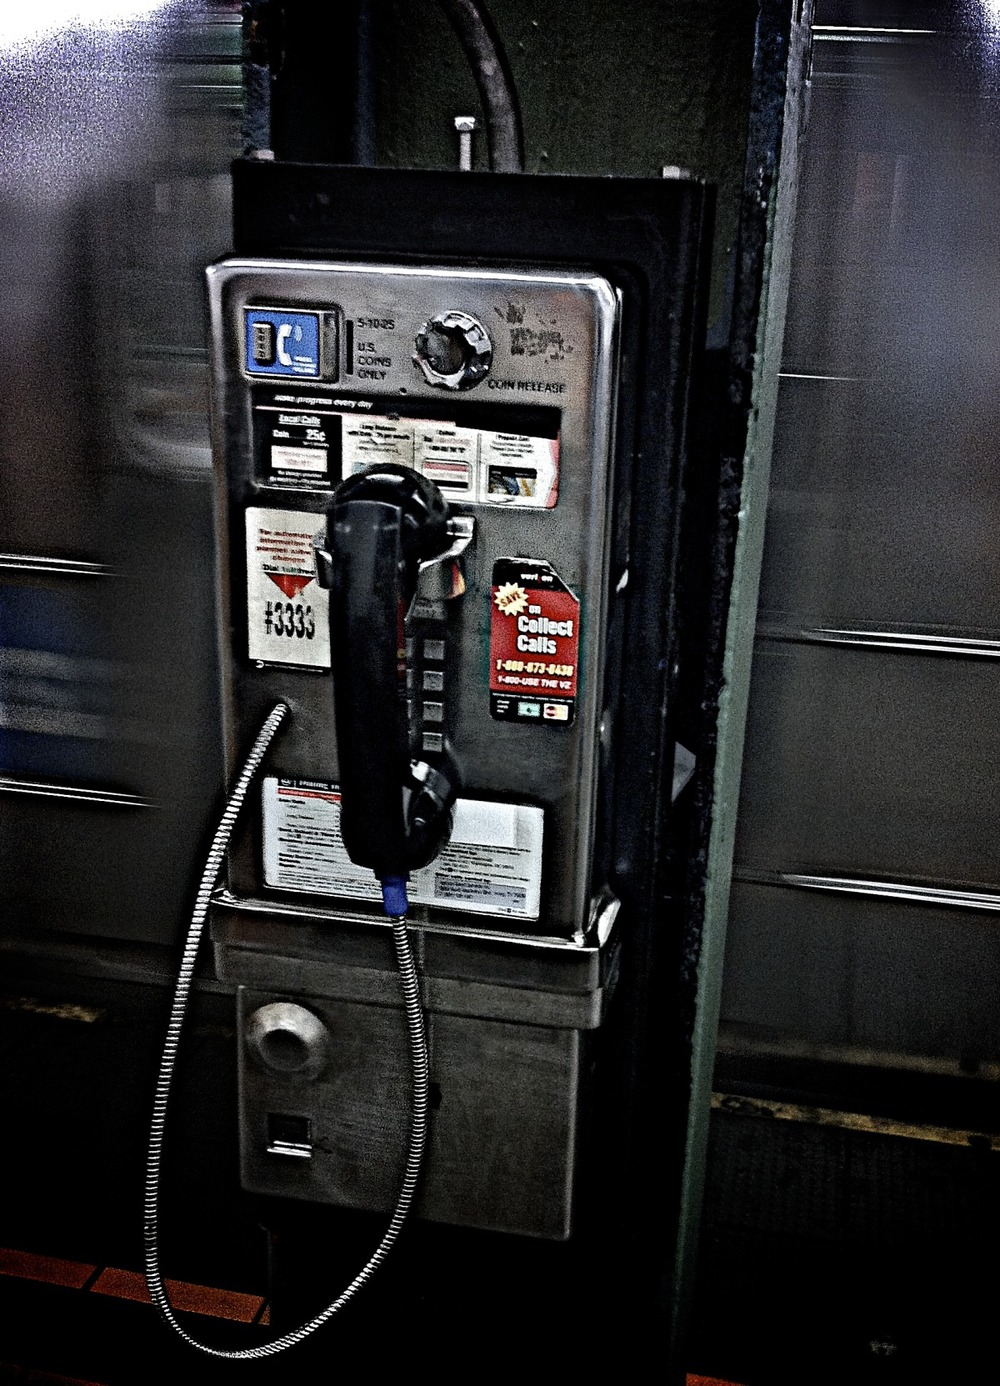 payphone export july 2012 8.jpg